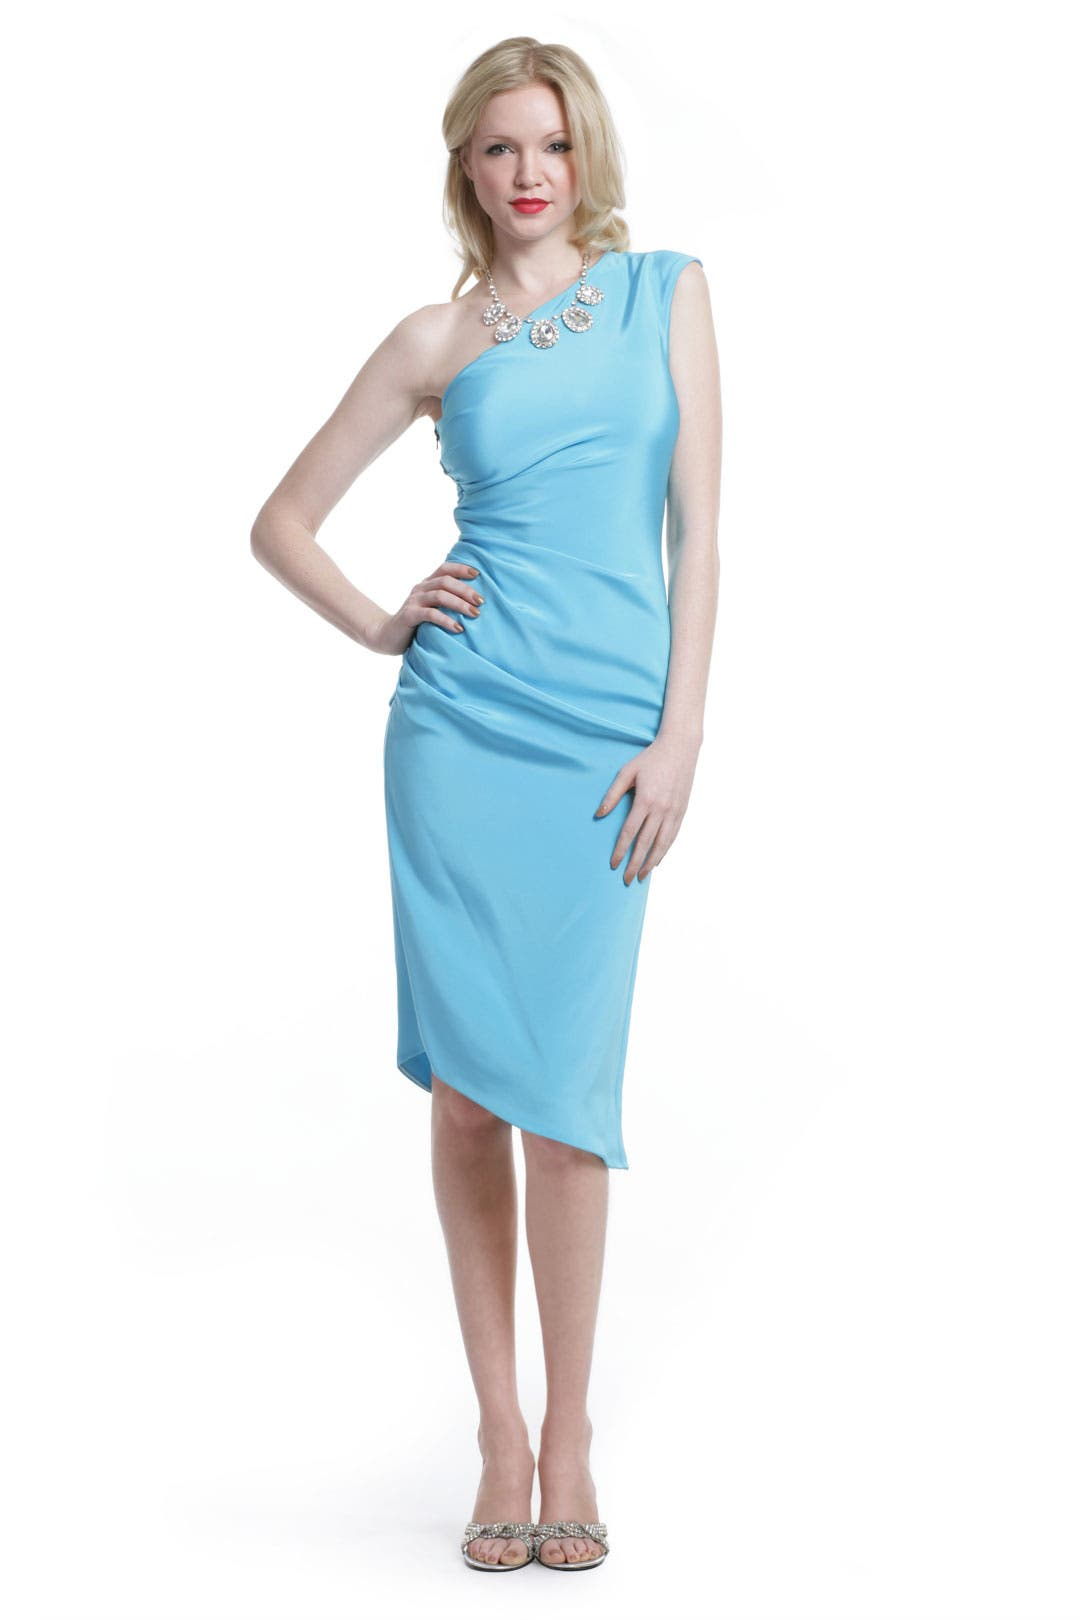 Glacier Ice Dress by Prabal Gurung